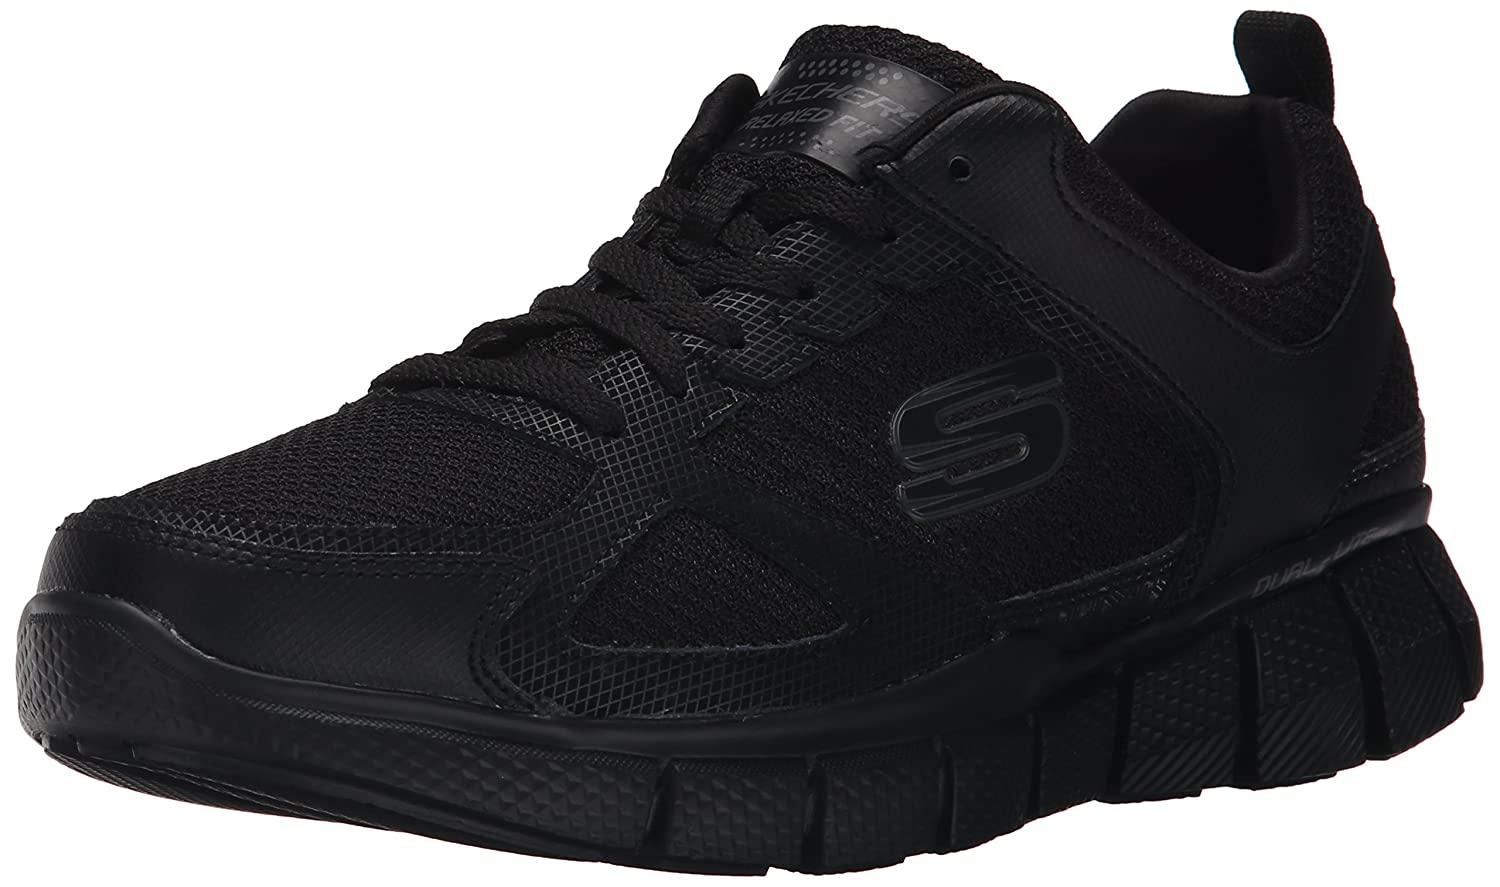 Skechers Sko Menns India PX8IdlcS9